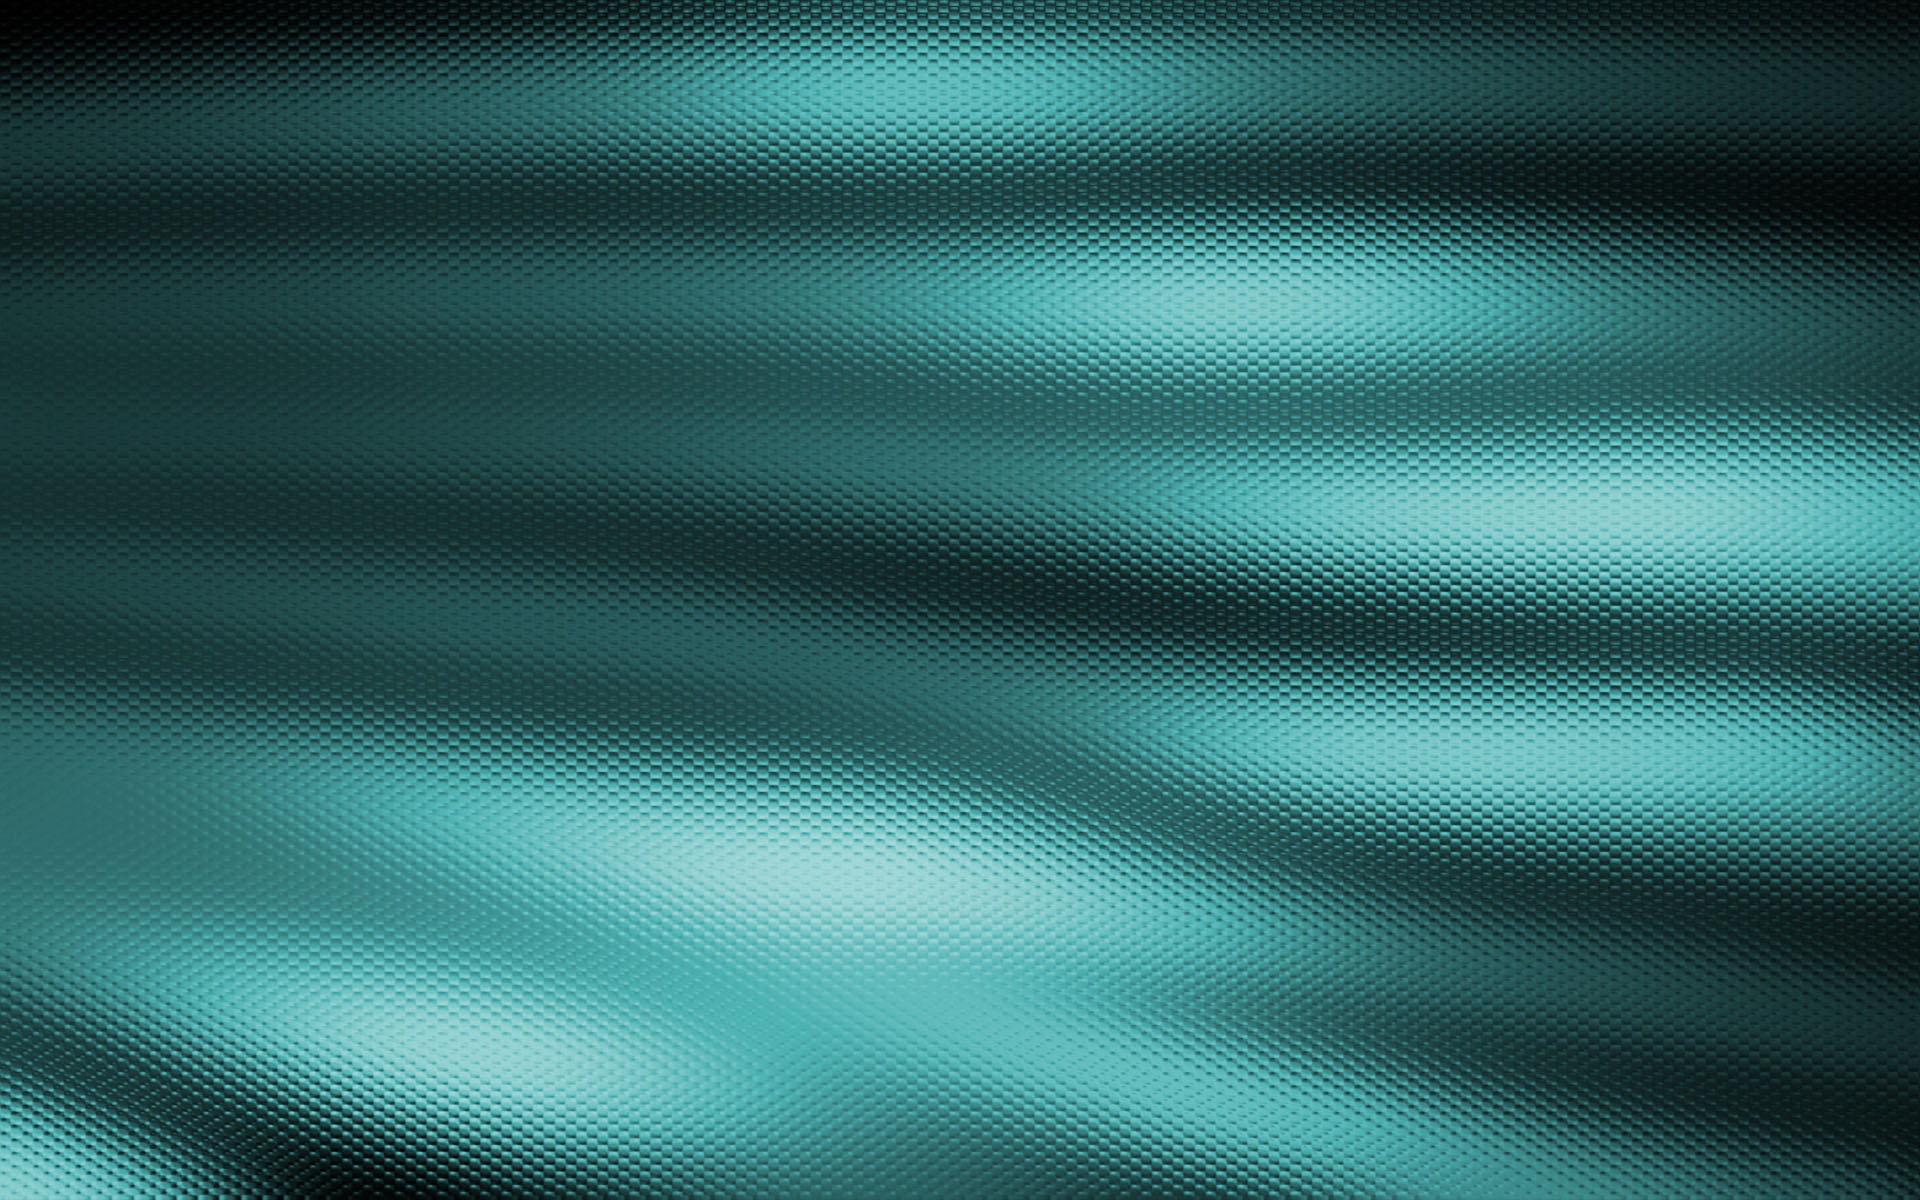 Background color 10135